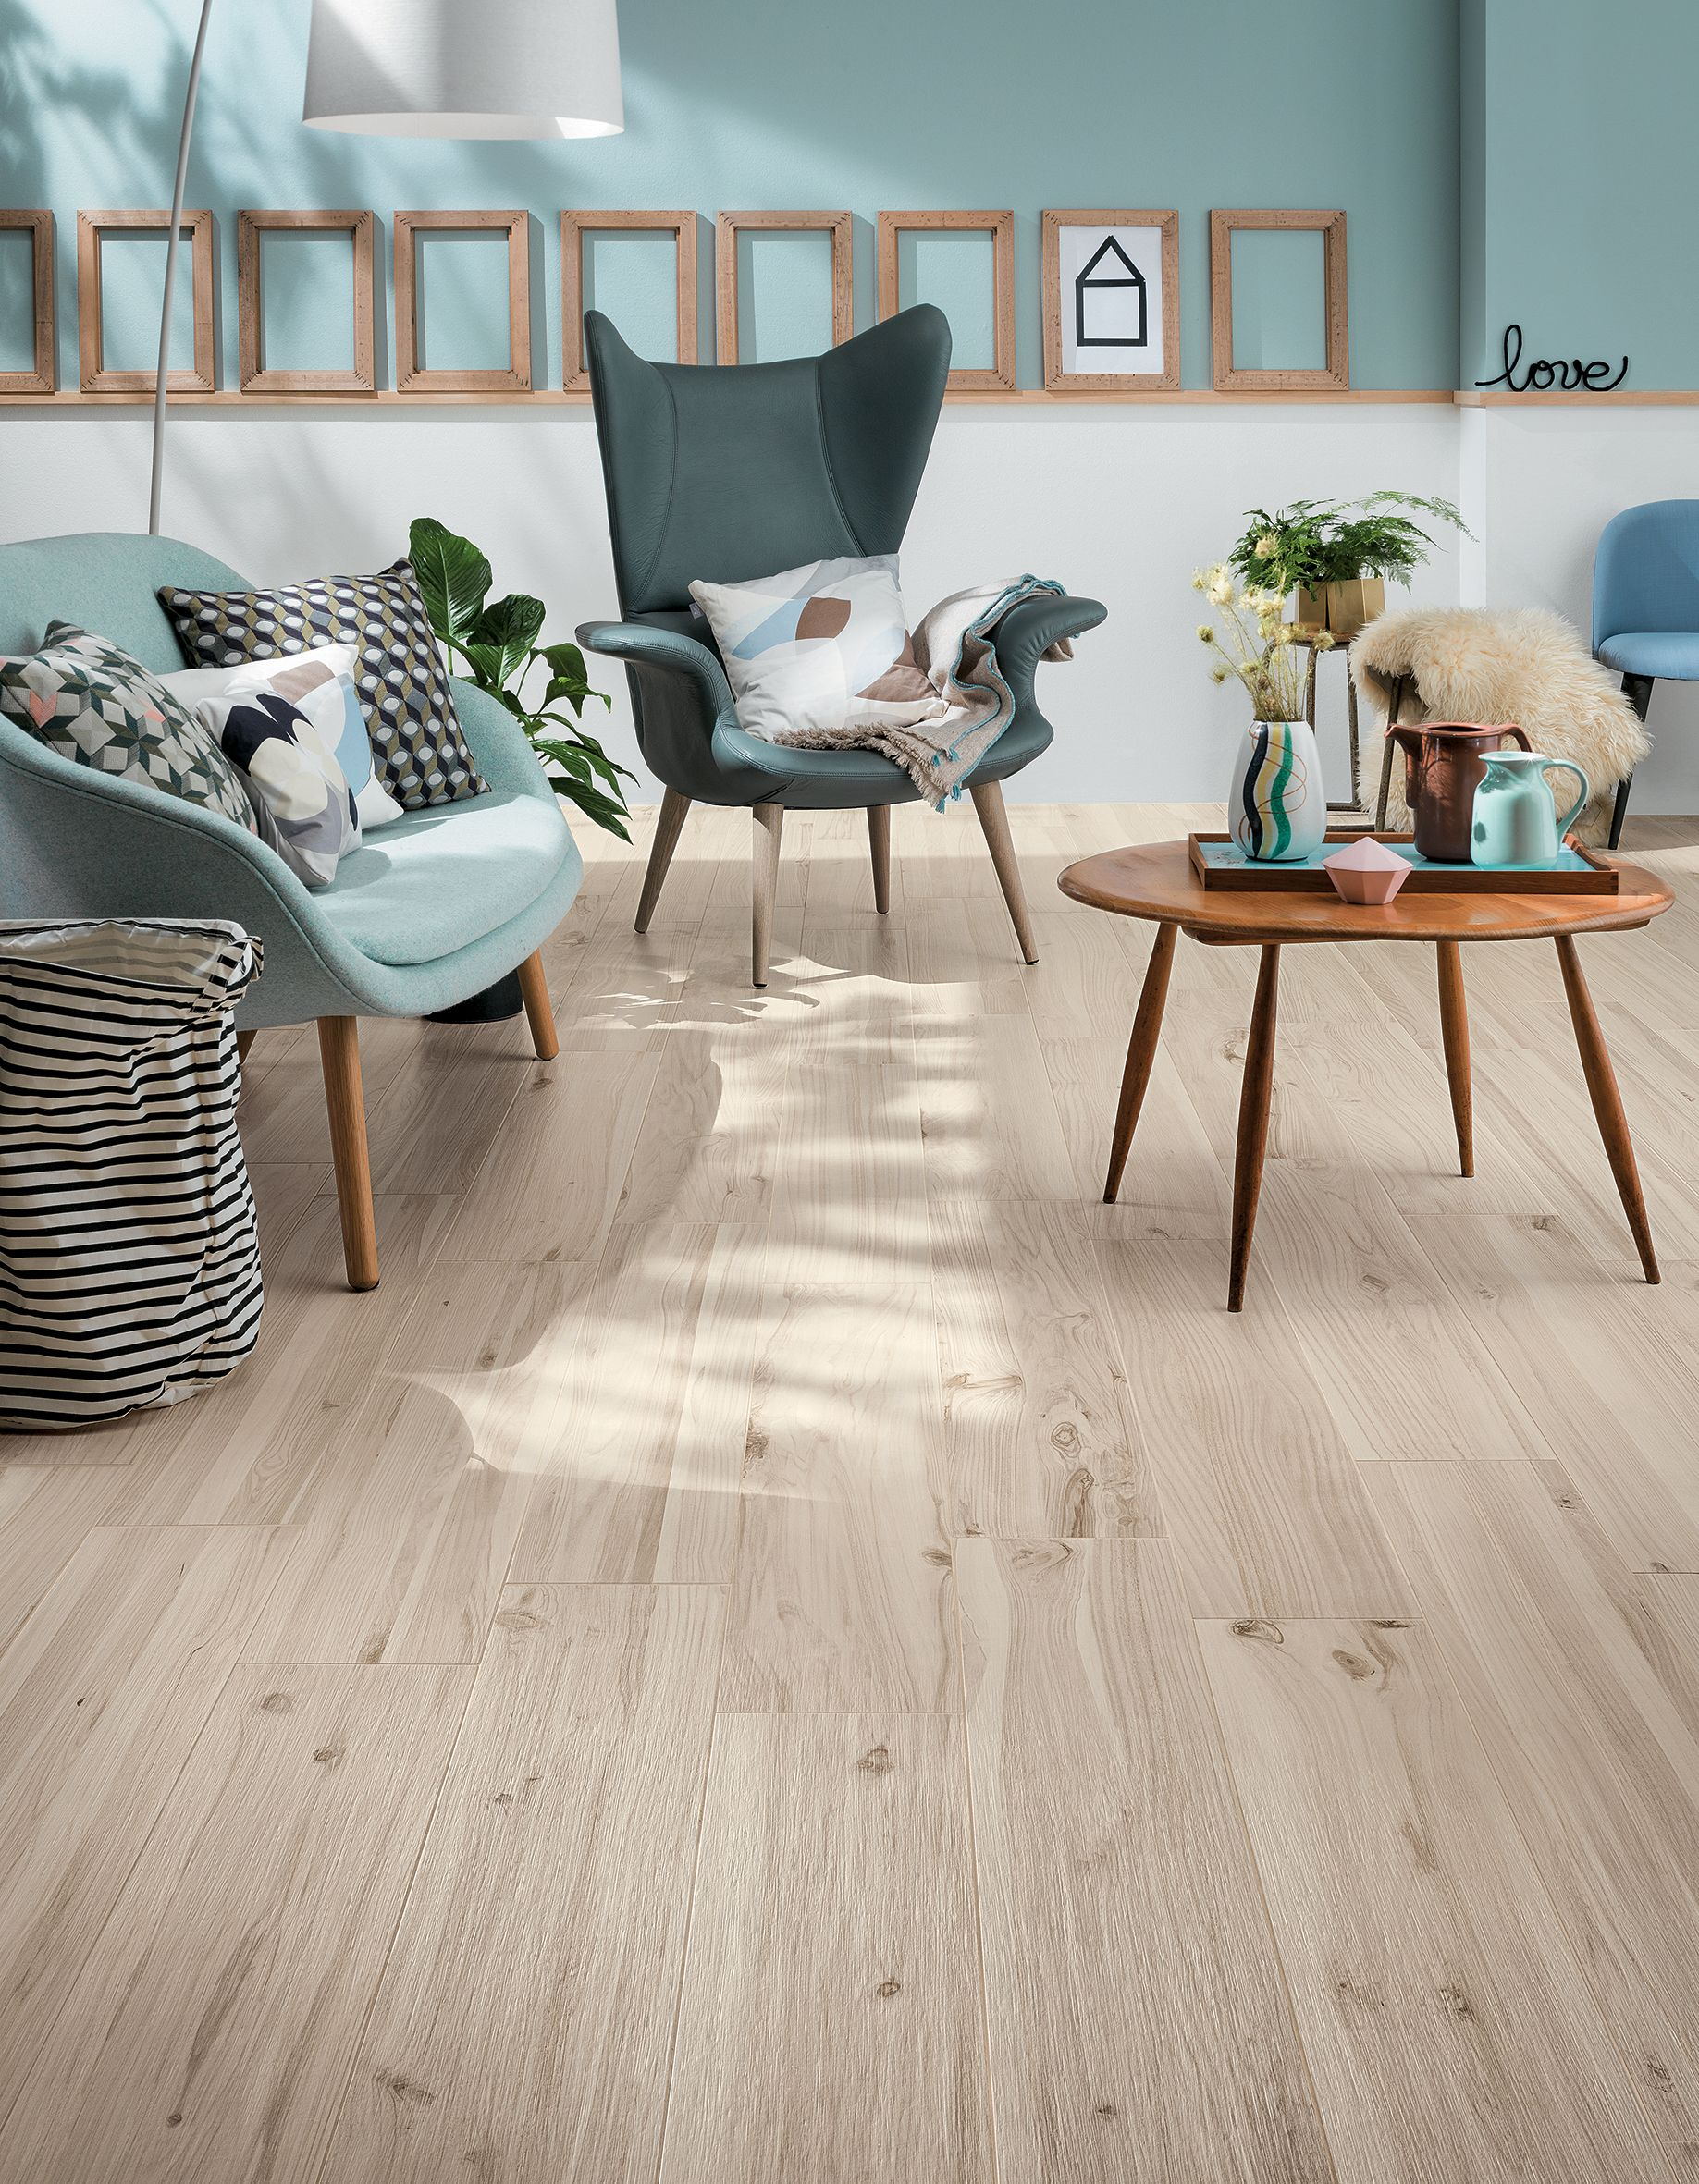 Pin By Tileshop On Wood Look Tile Living Room Dining Room